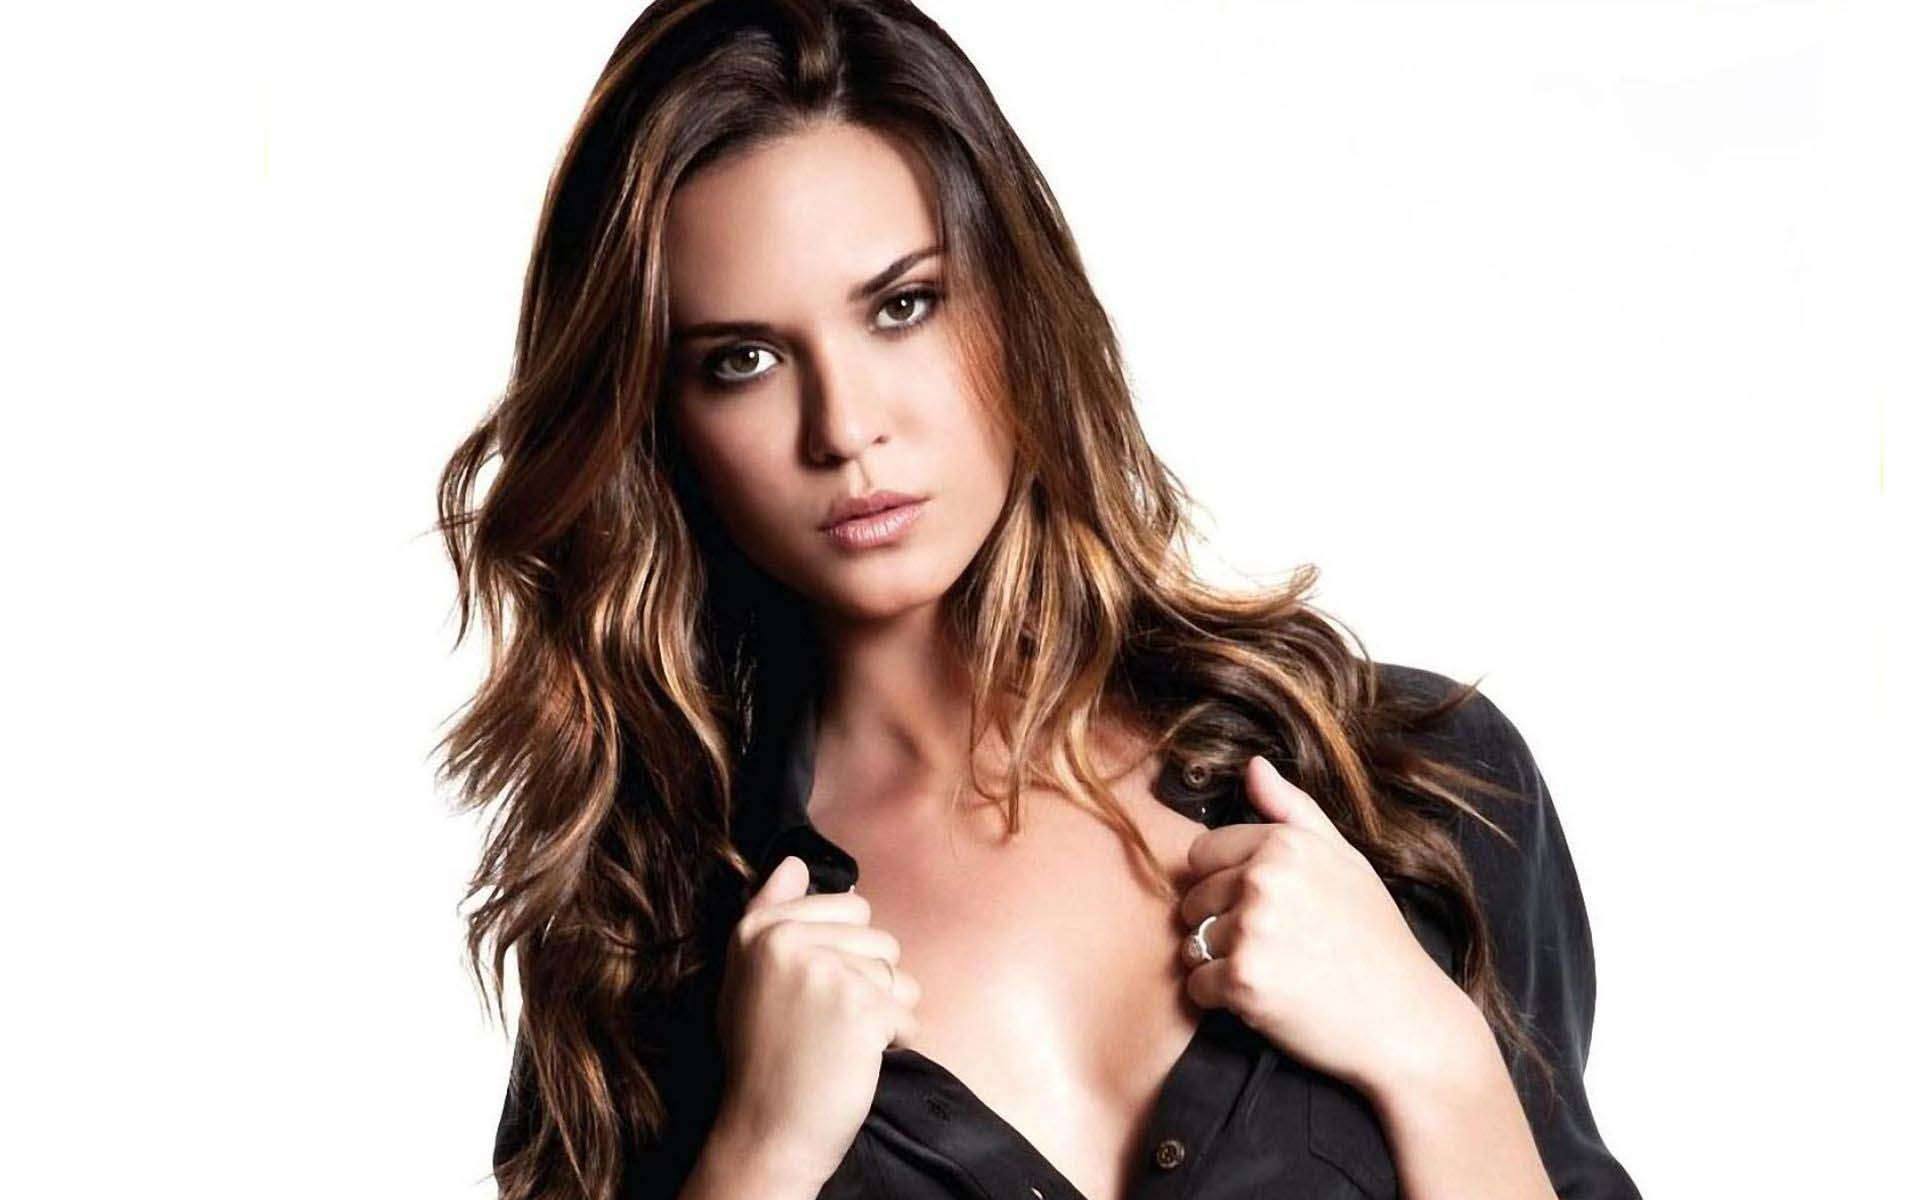 1920x1200 - Odette Annable Wallpapers 34